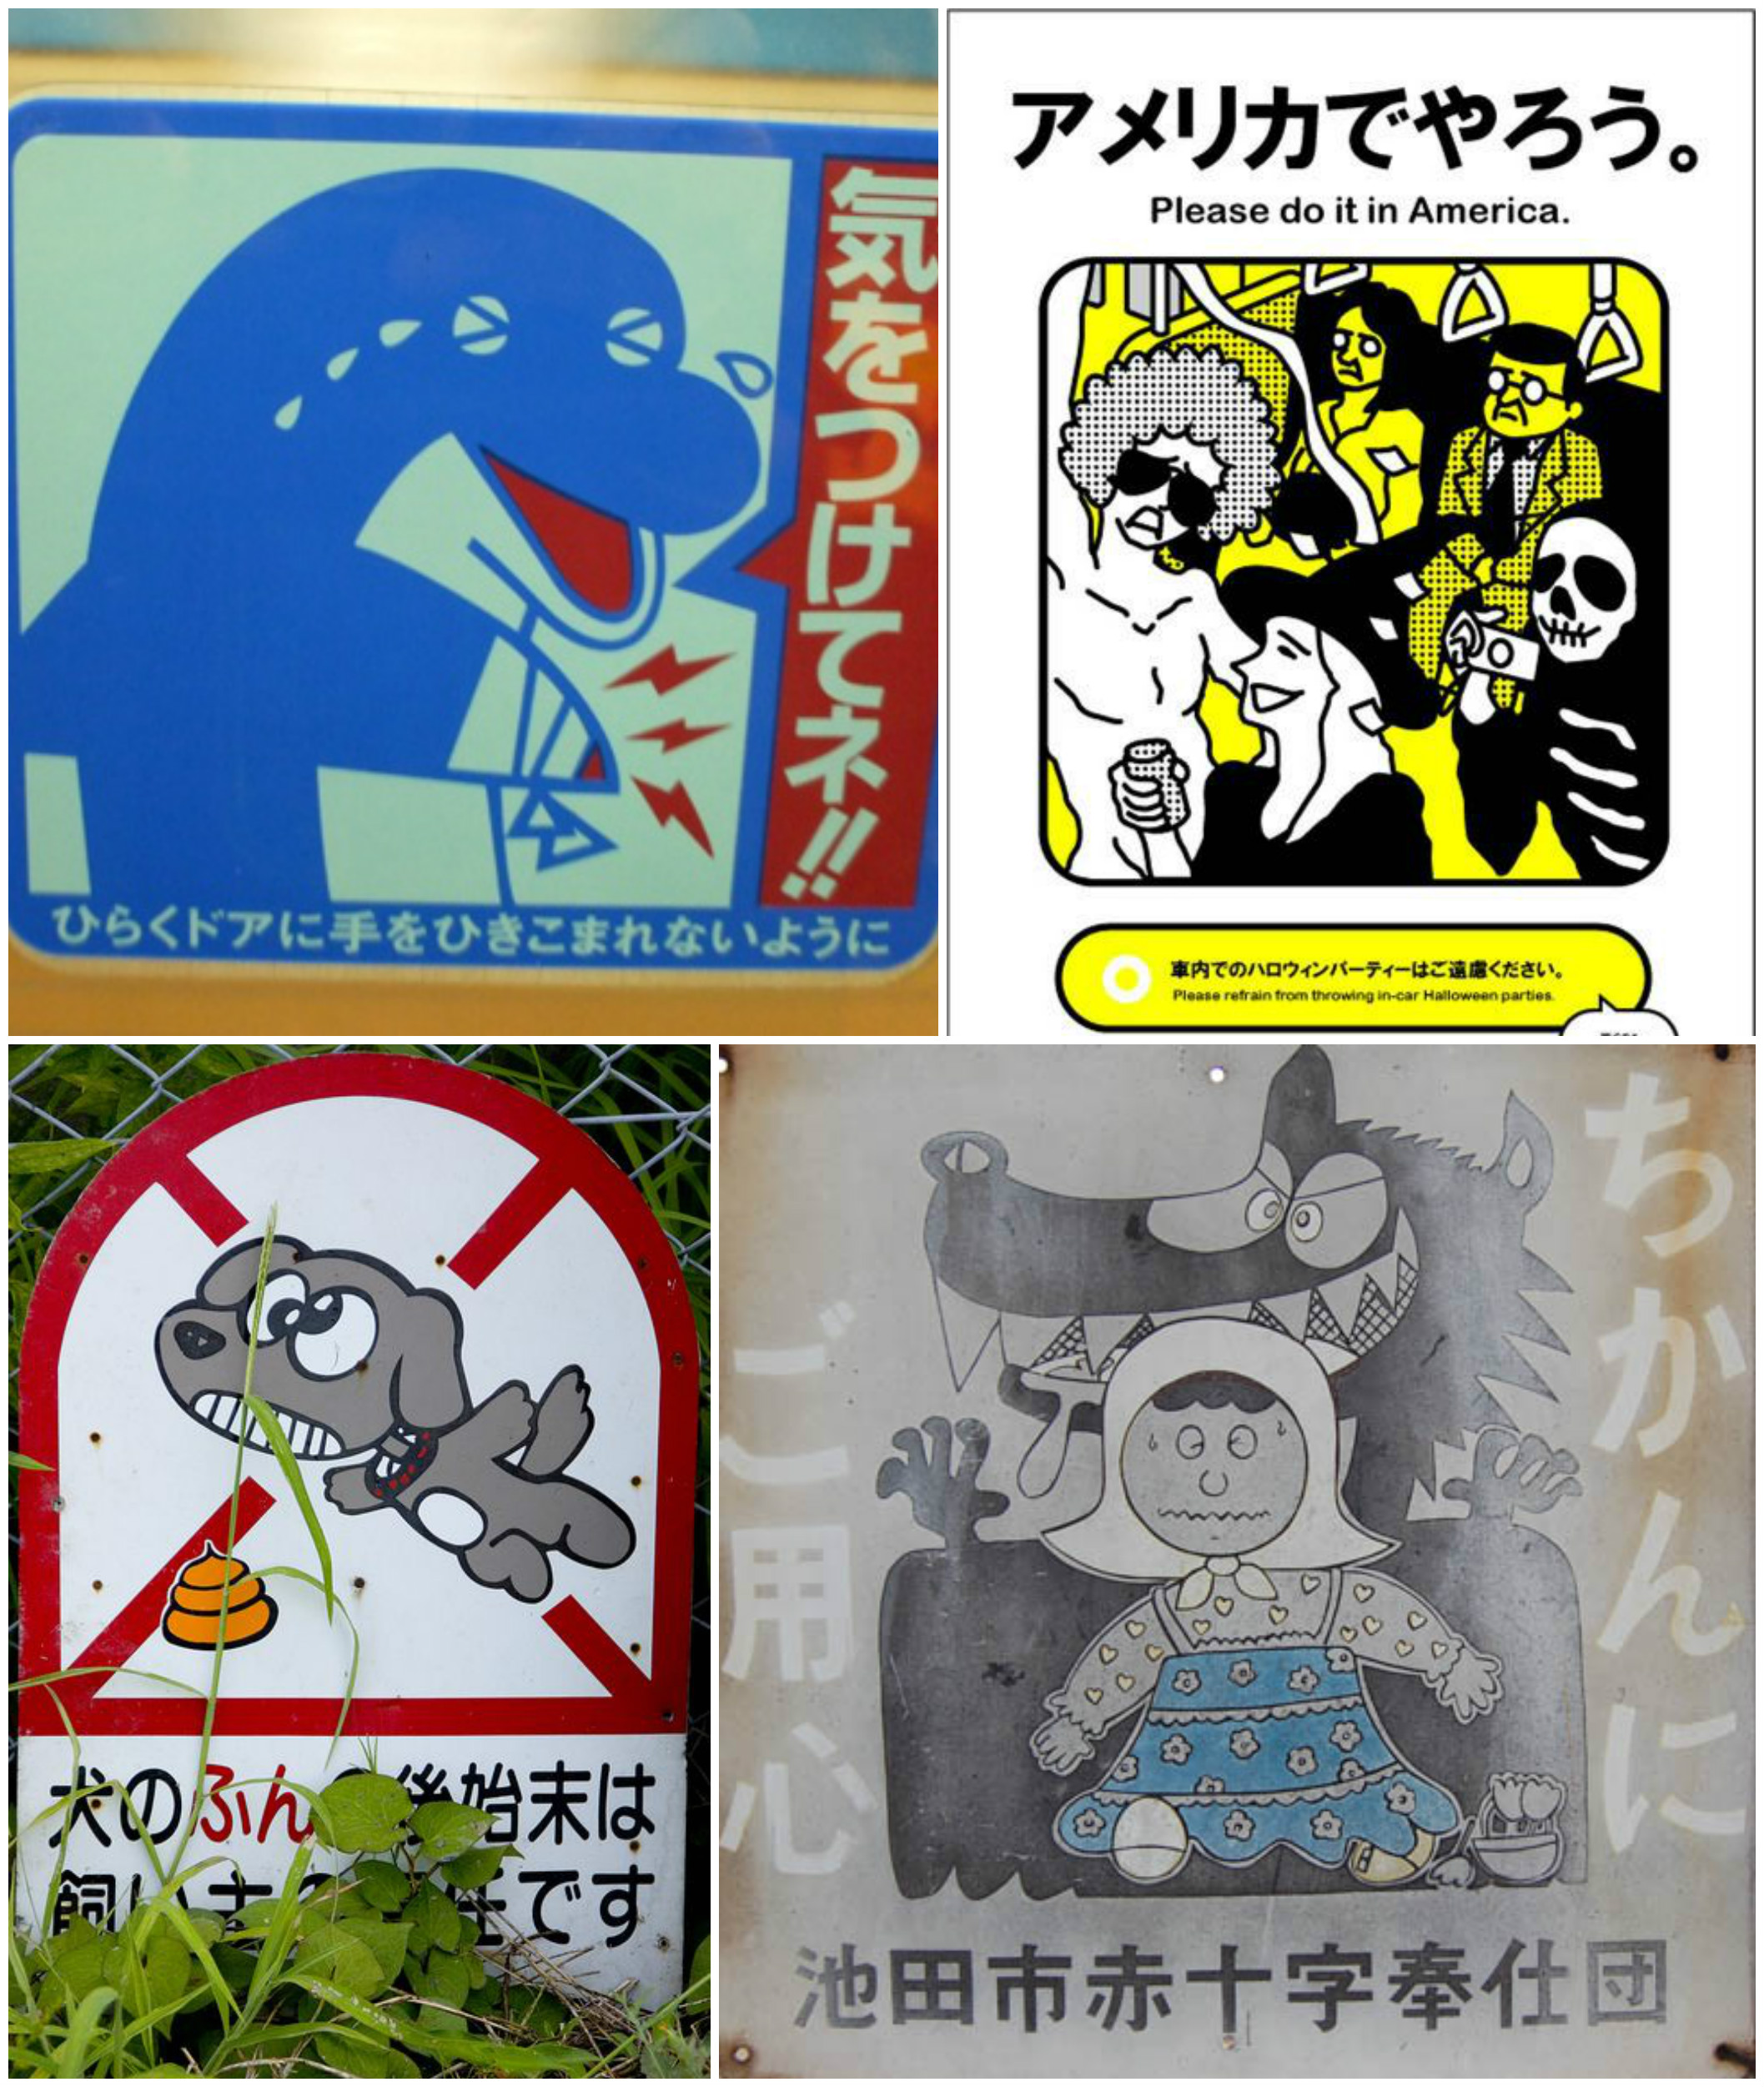 japanese warning signs